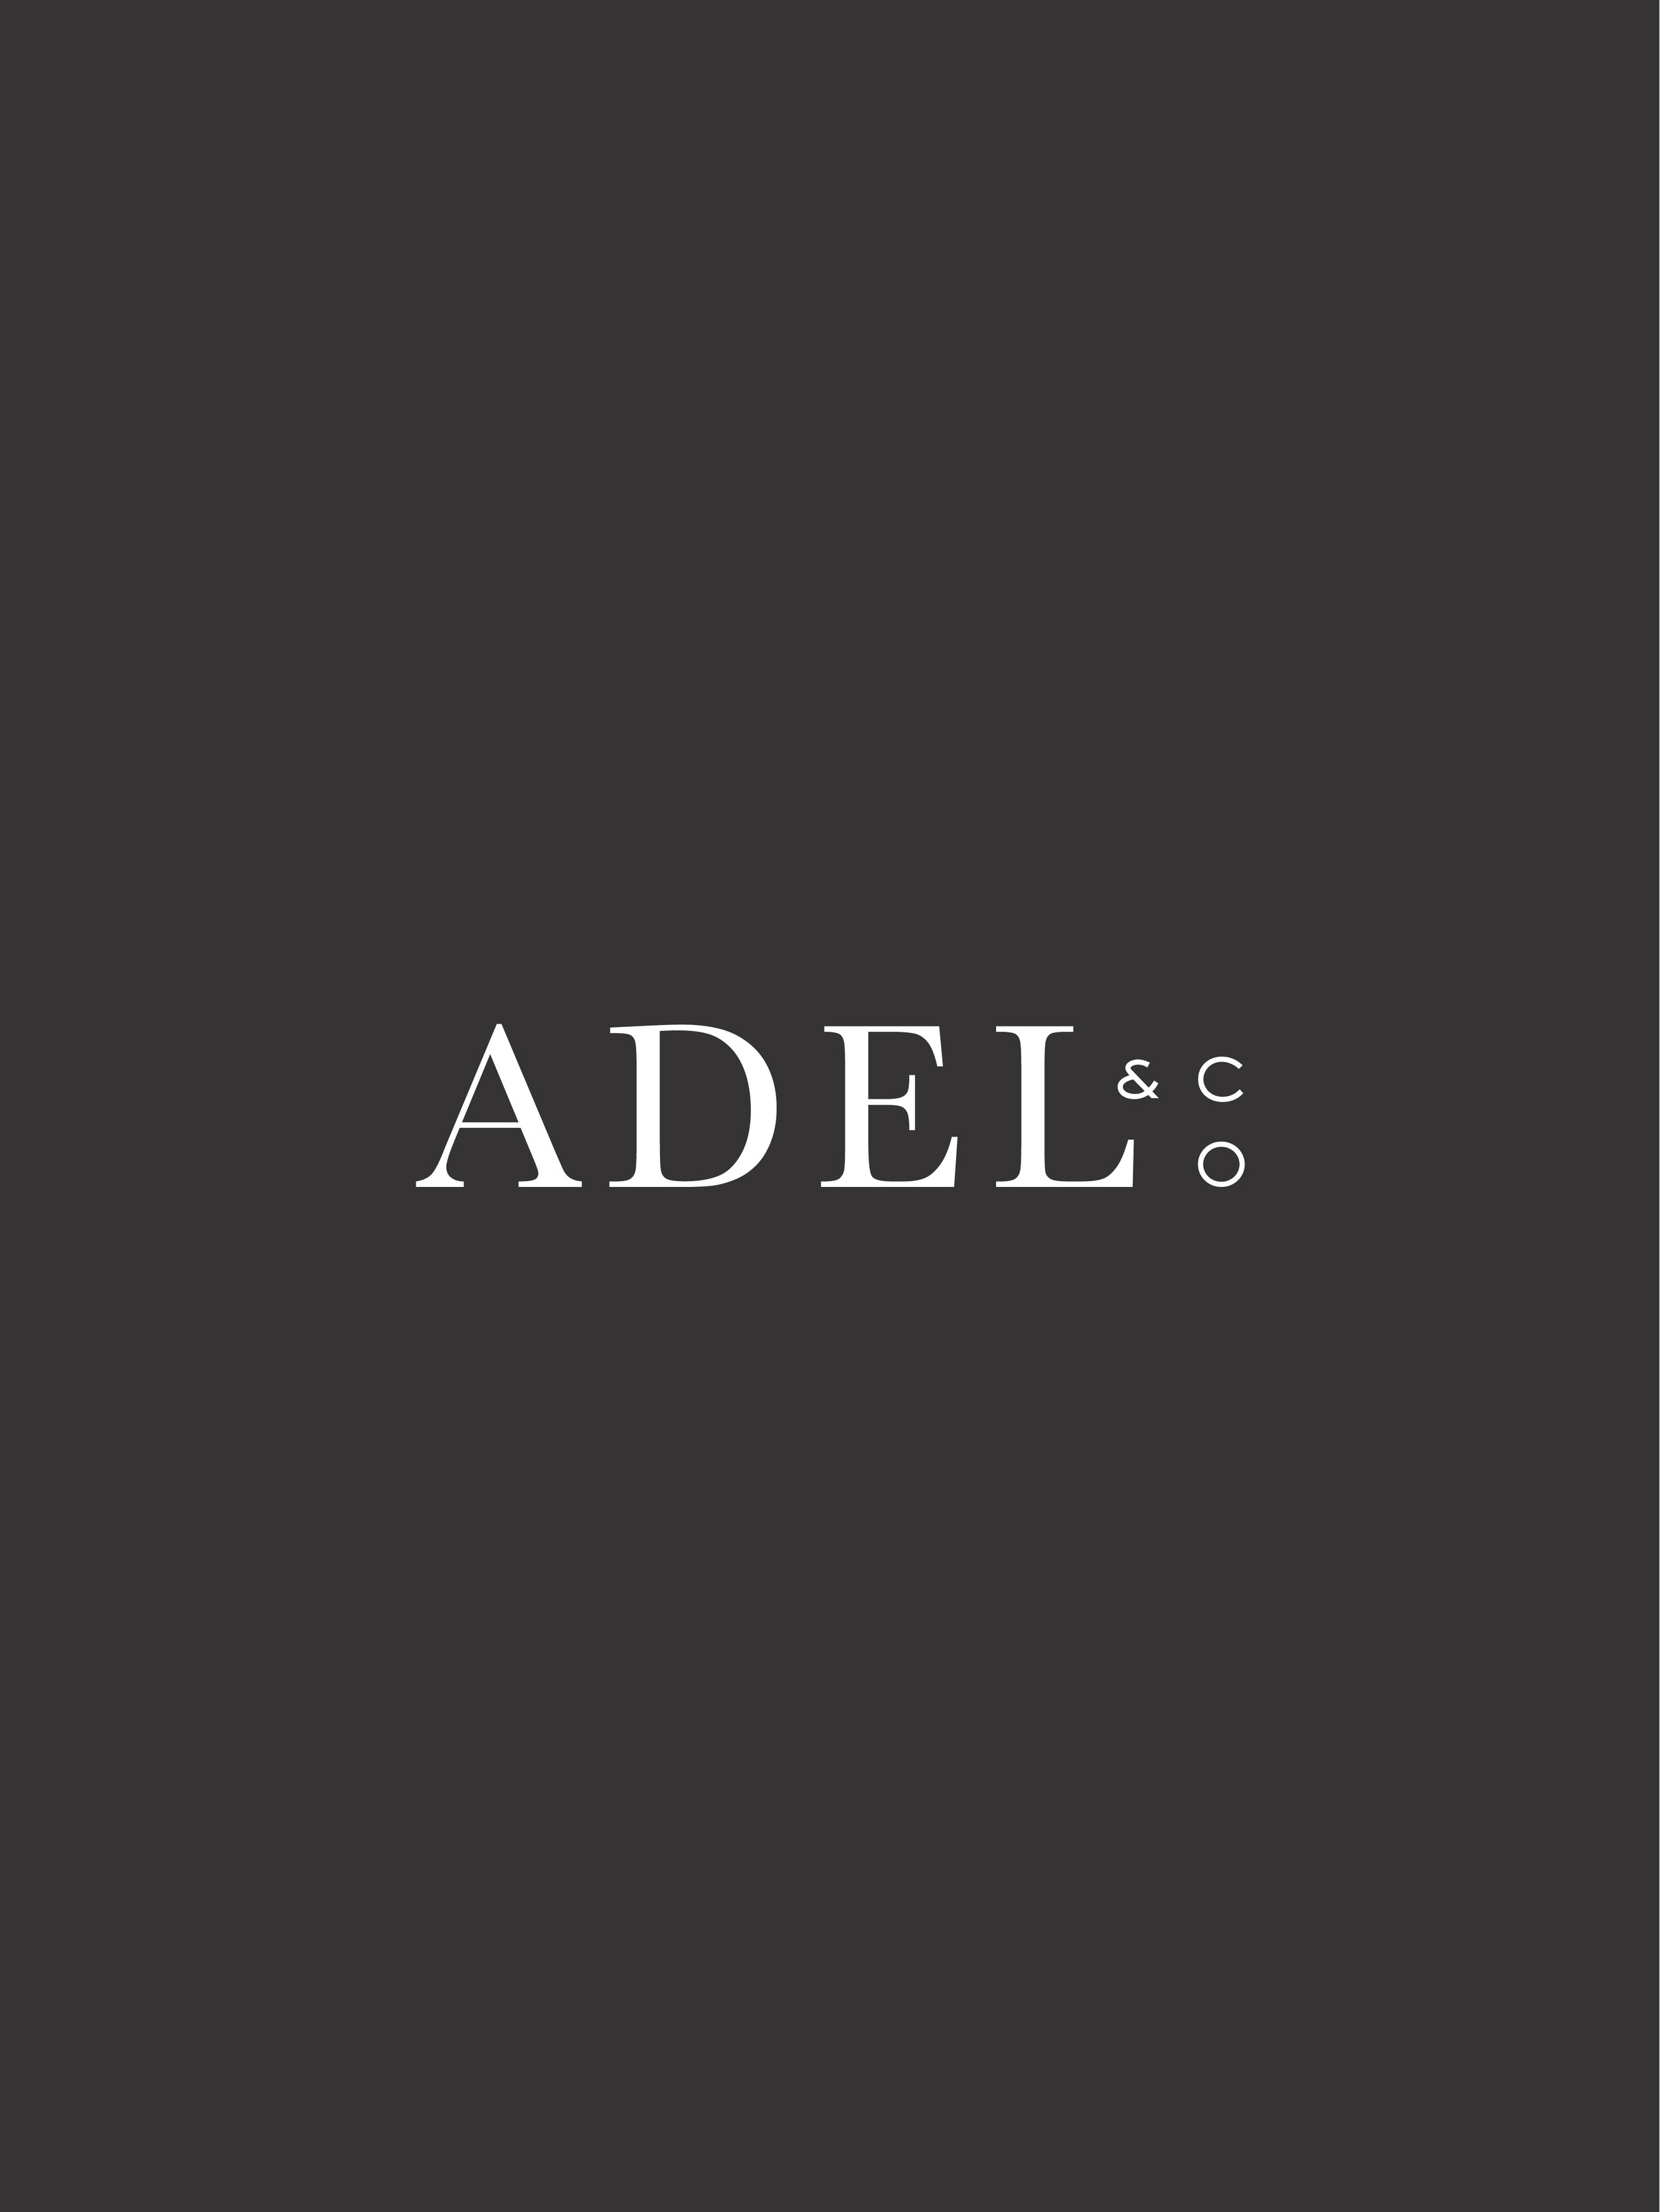 Adel & Co business cards - by January Made Design